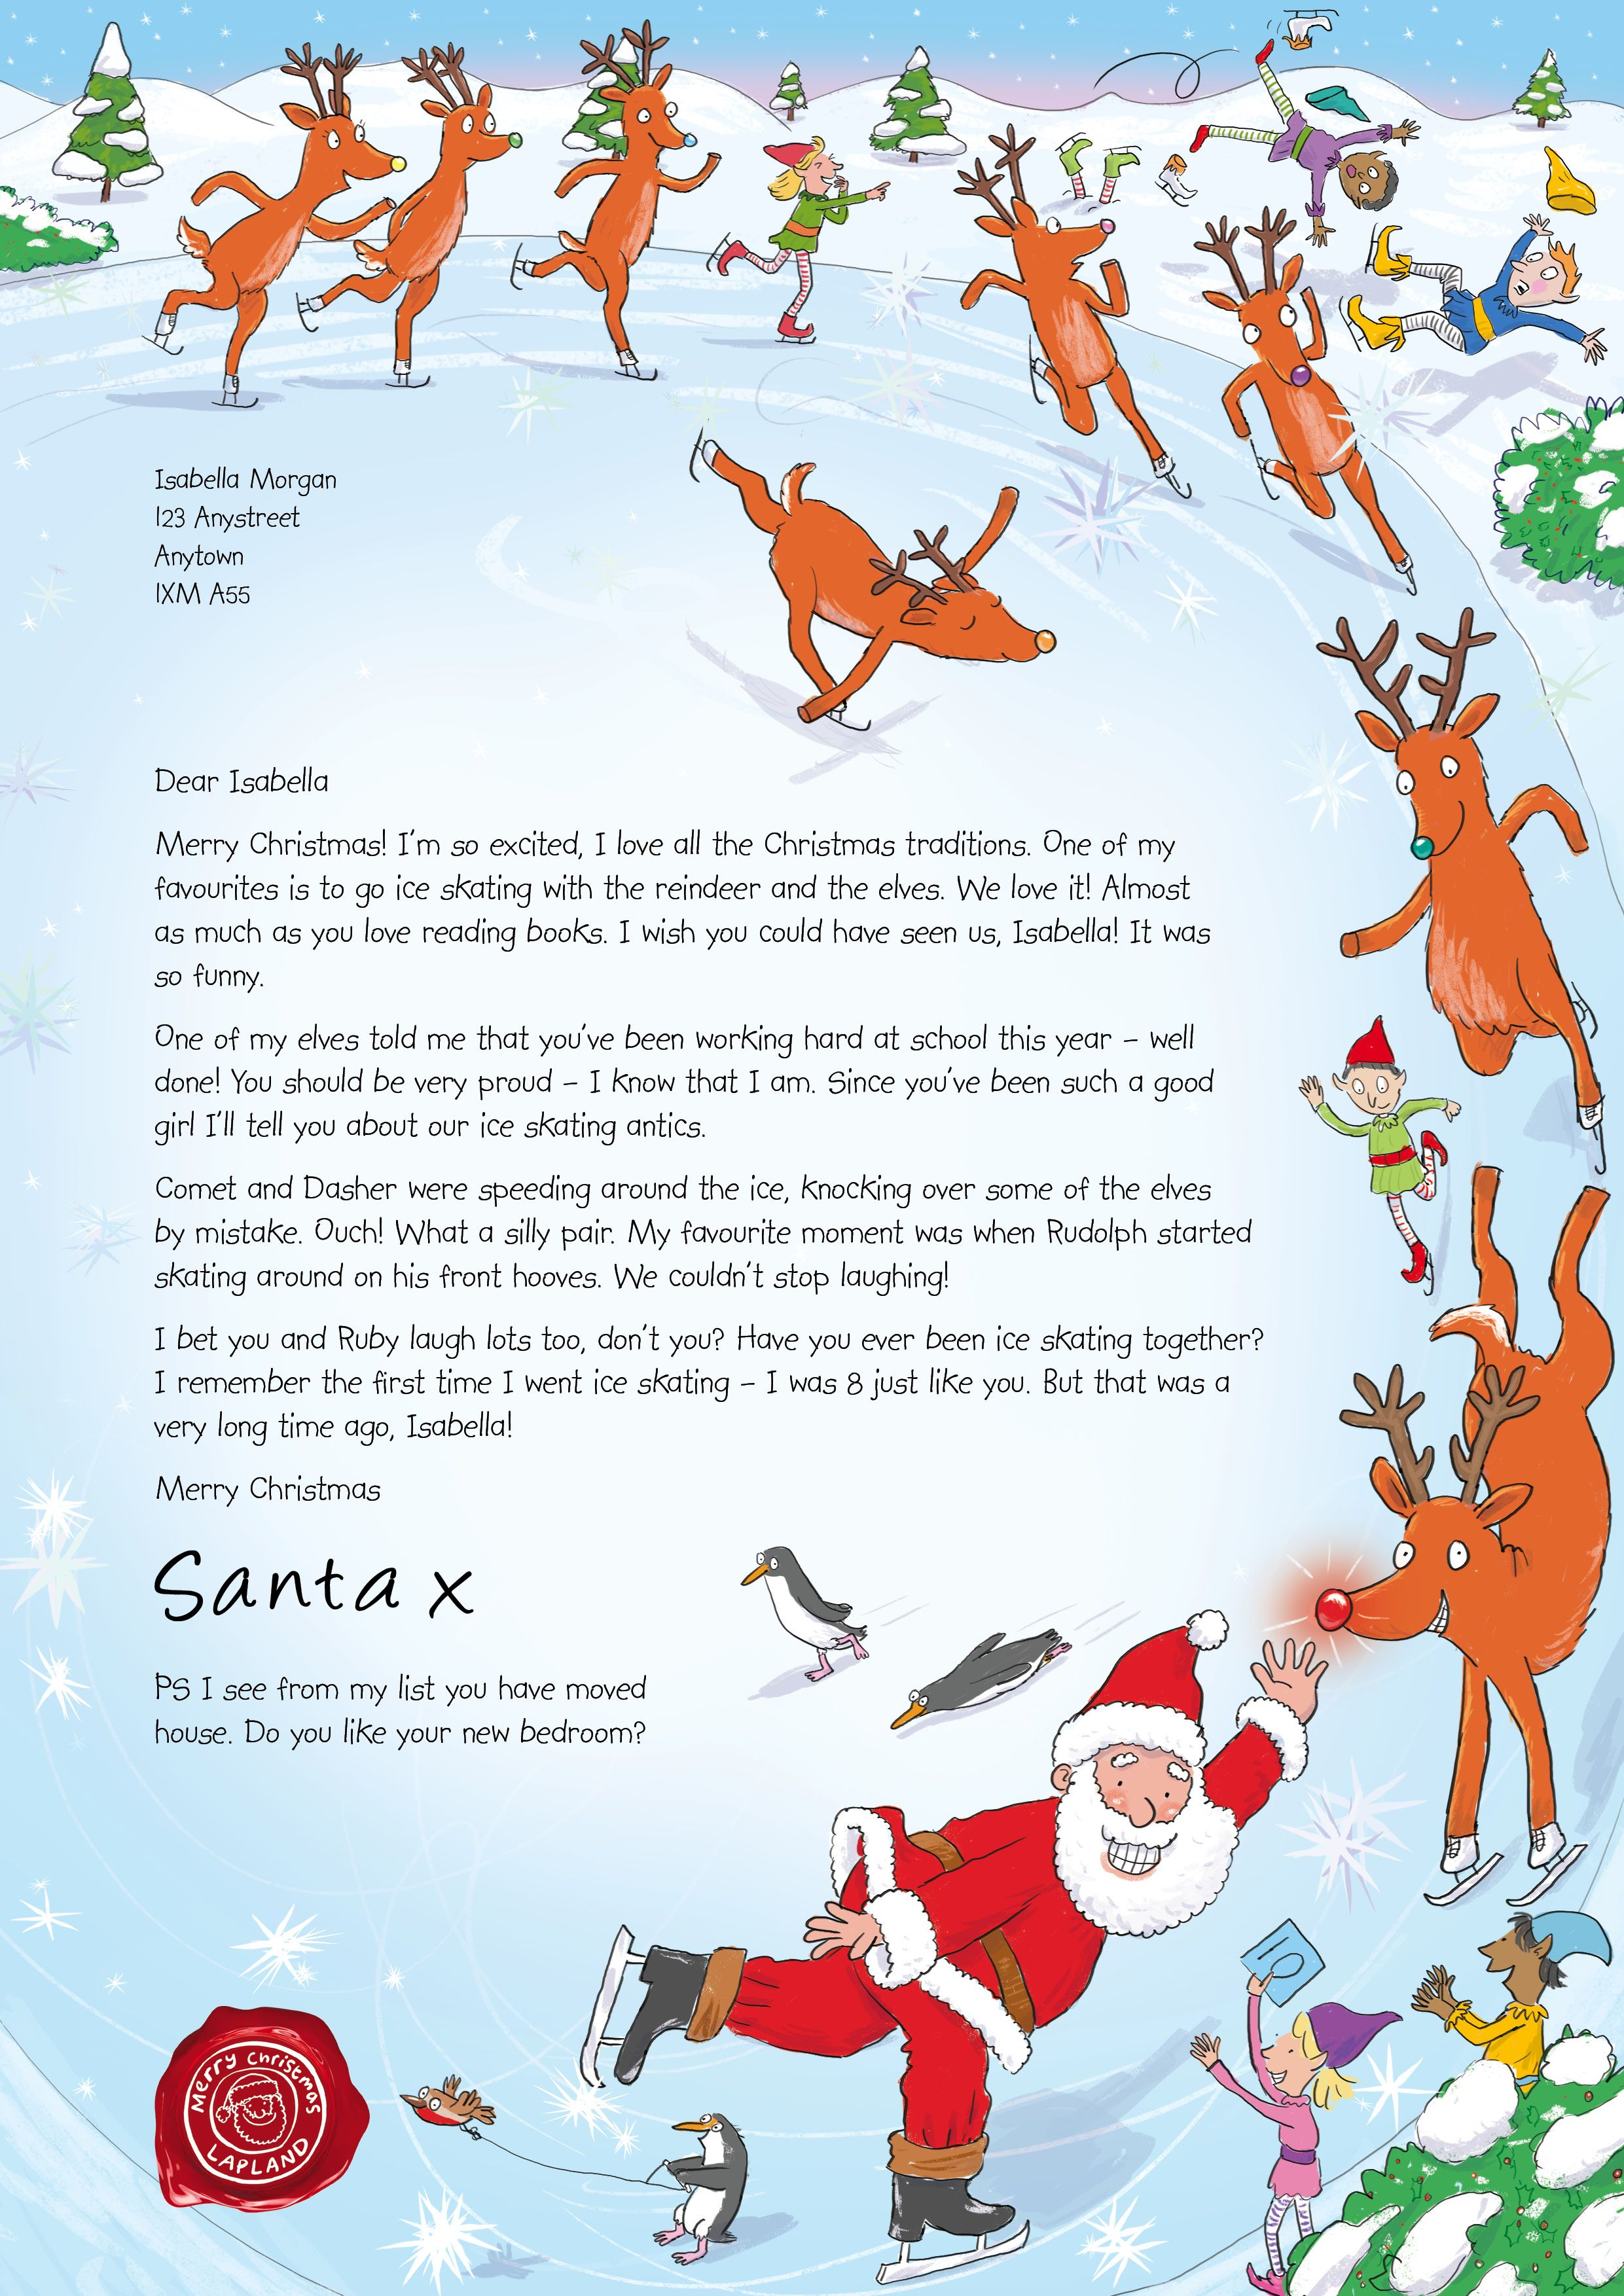 Nspcc letter from santa keeping fit 2015 httpsnspcc nspcc letter from santa design december 2014 spiritdancerdesigns Choice Image